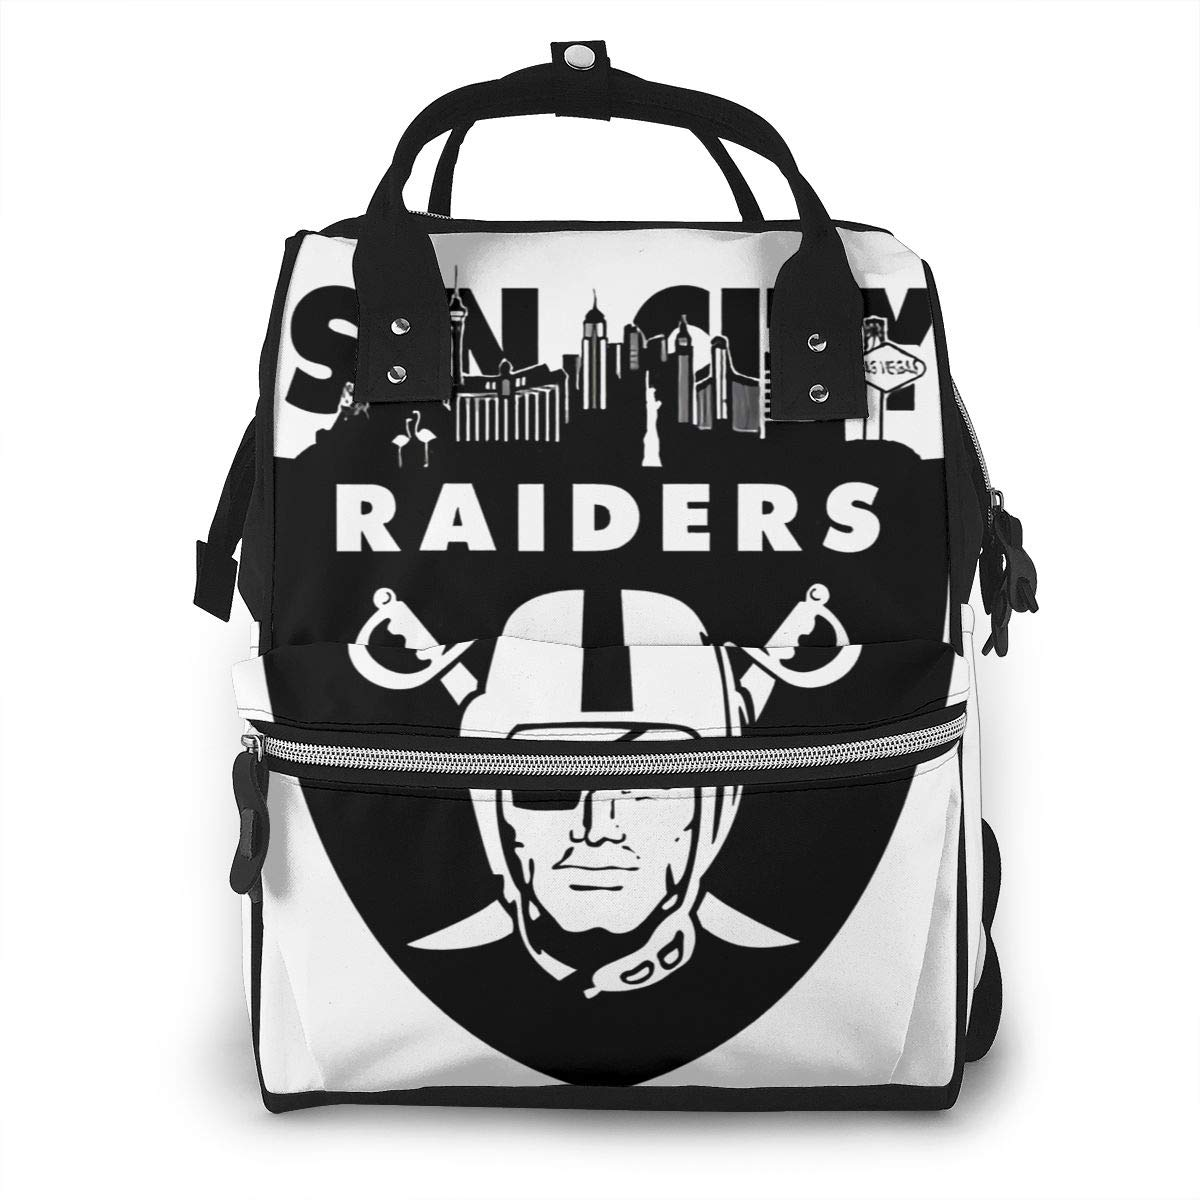 Skyline Las Vegas Raiders Inspired Classic Durable Large Capacity Diaper Bag Mommy Backpack